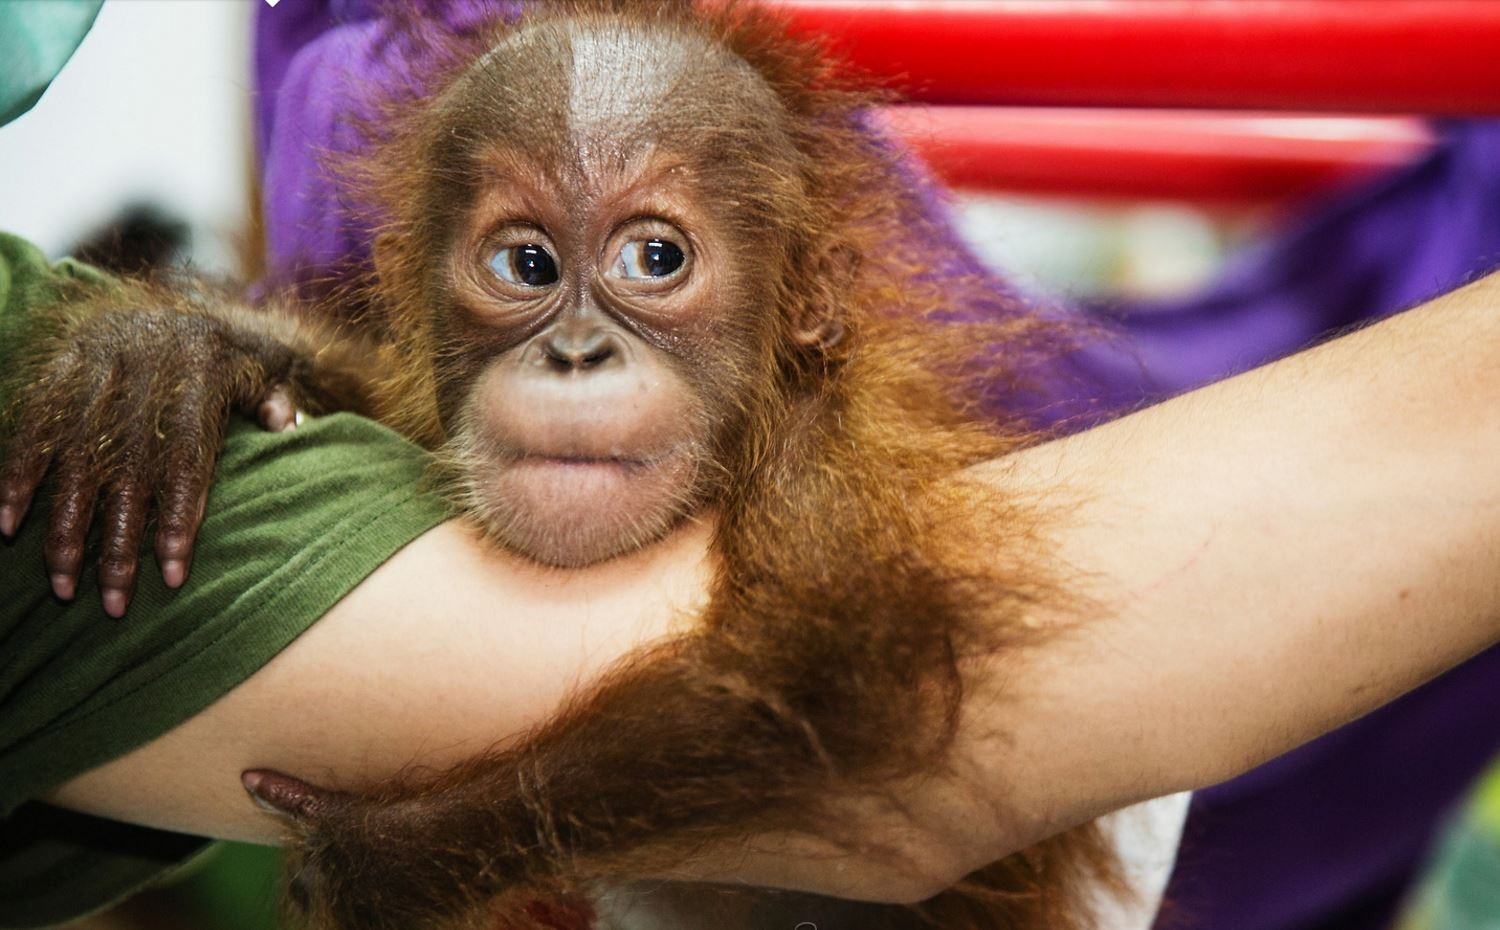 Image: Baby orangutan clutches helper's arm